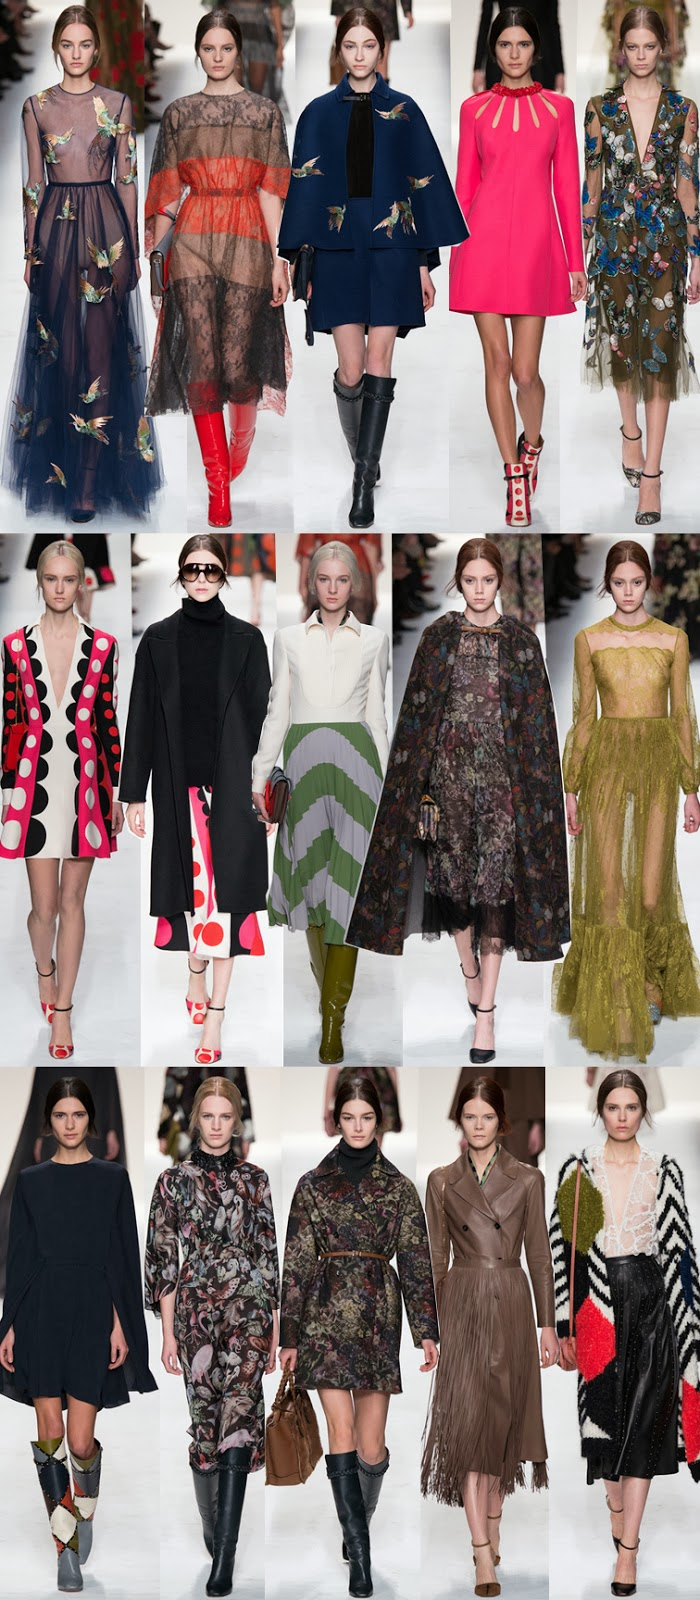 Valentino fall winter 2014 runway collection, PFW, Paris fashion week, FW14, AW14, Mara Grazia Chiuri, Pier Paolo Piccioli